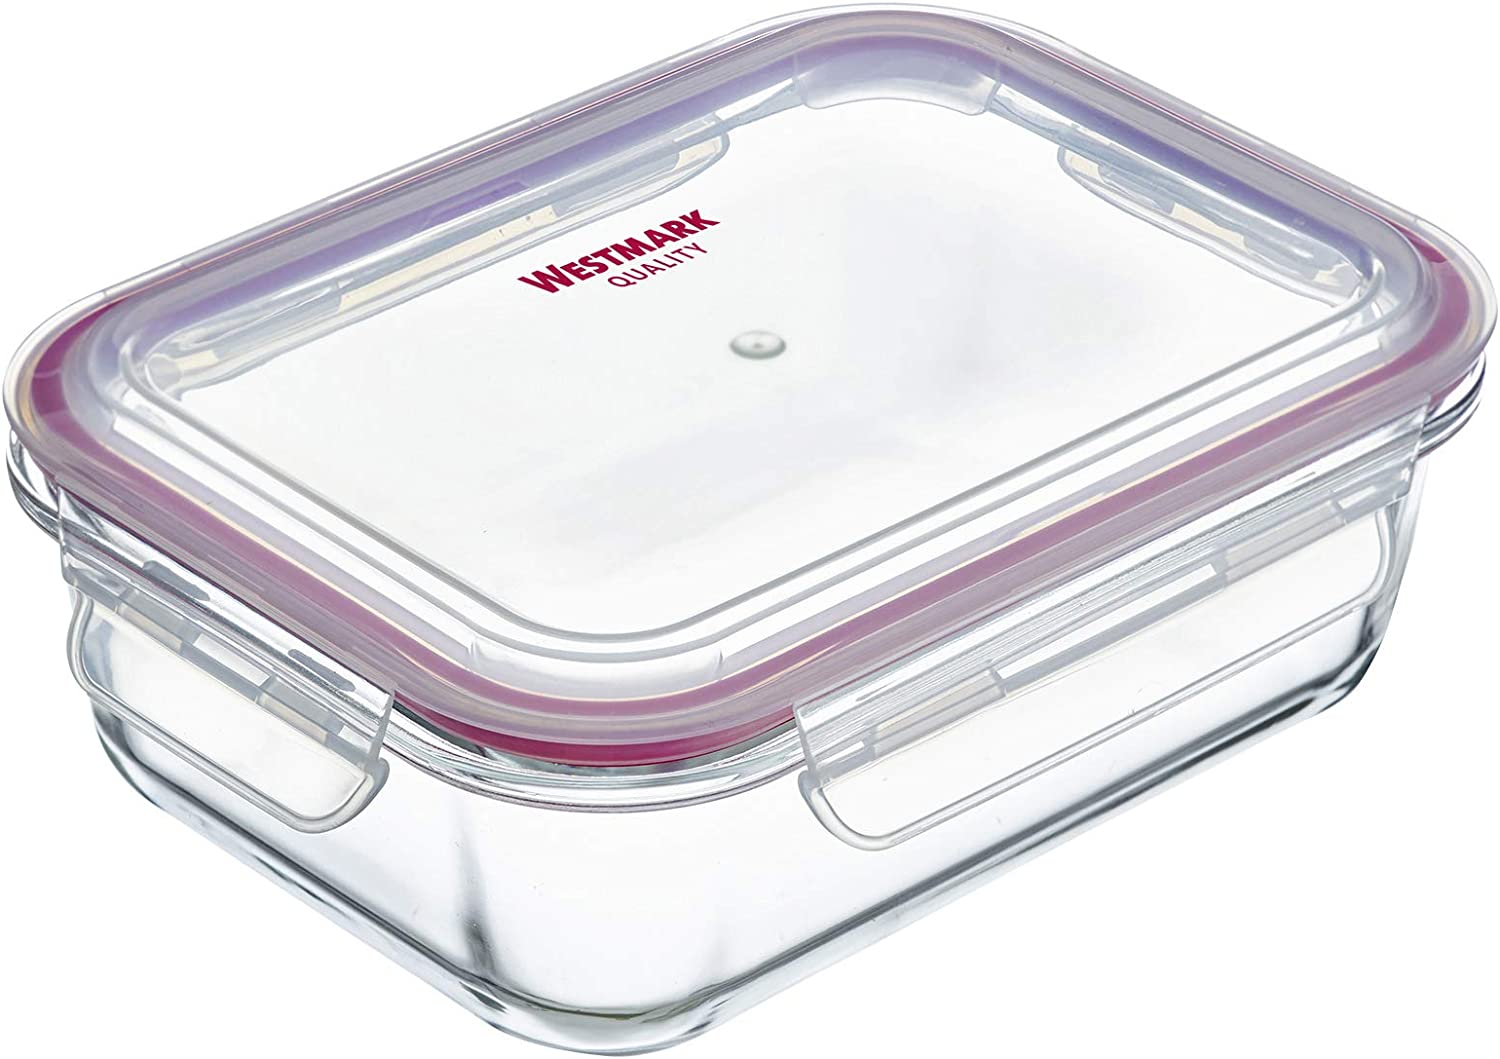 Westmark Glass Food Storage Container, Plastic, Silicone, 1040 ml, Transparent